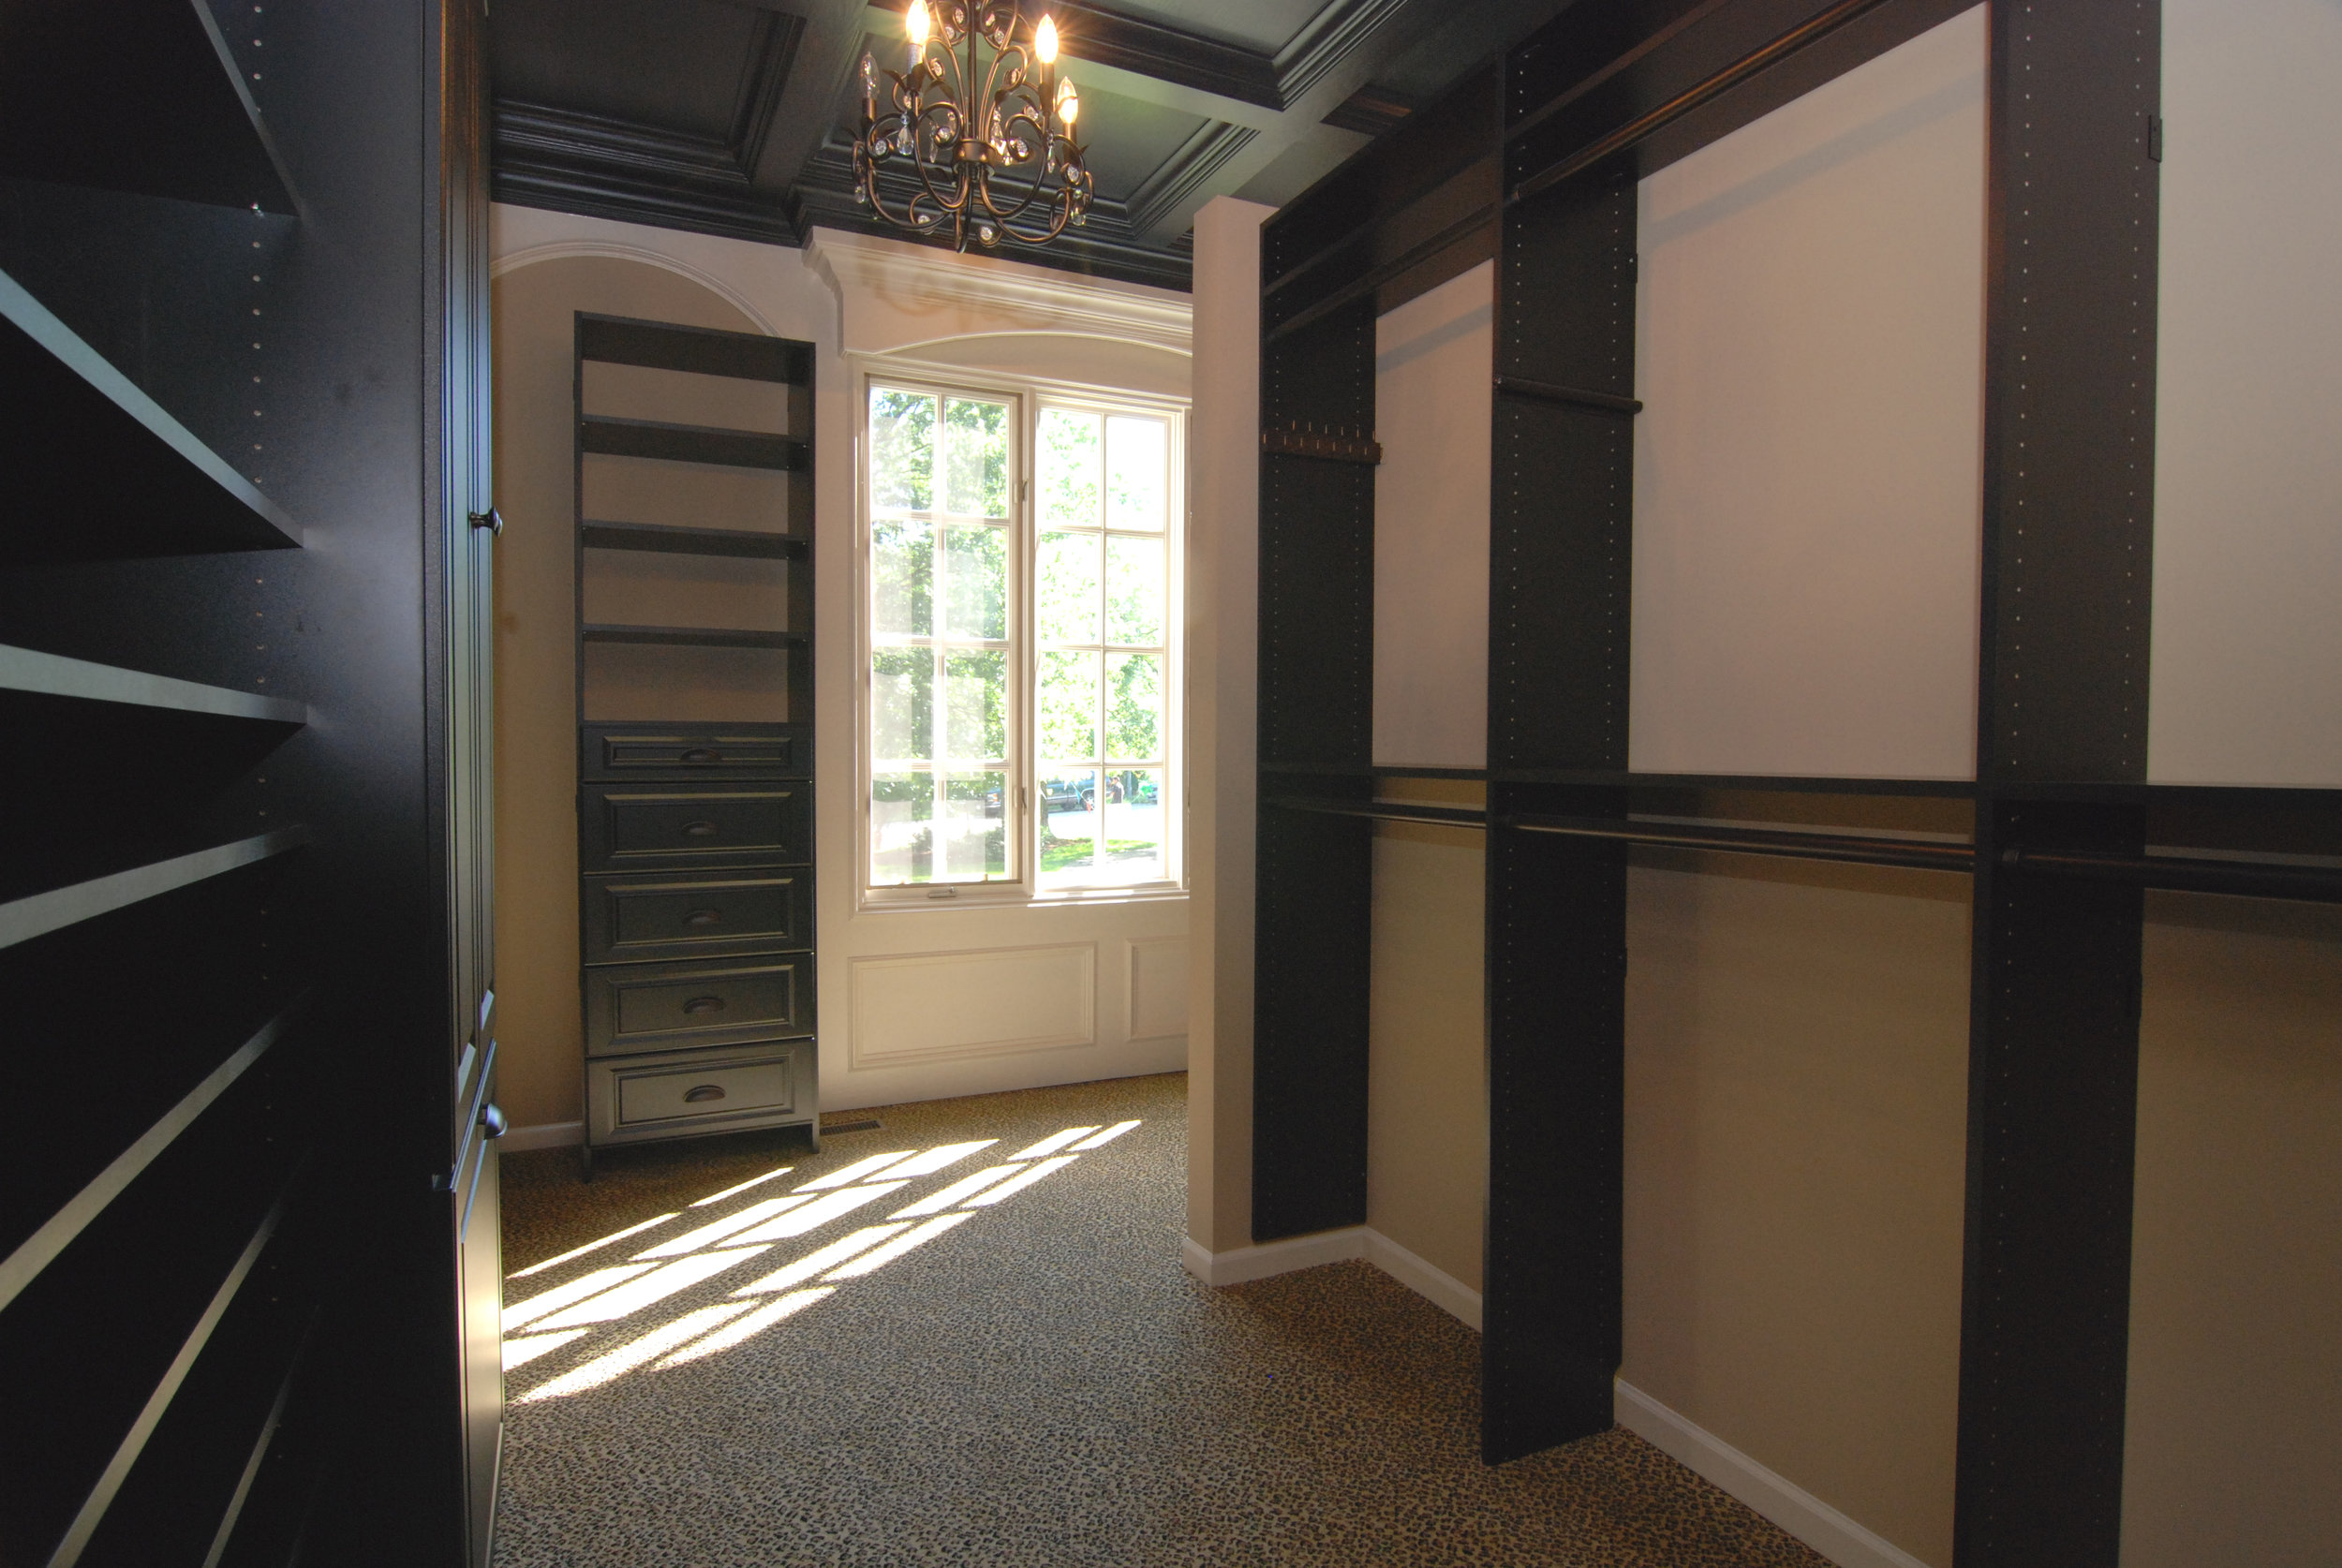 Study Turned into Master Closet on this First Floor Naperville Illinois Home